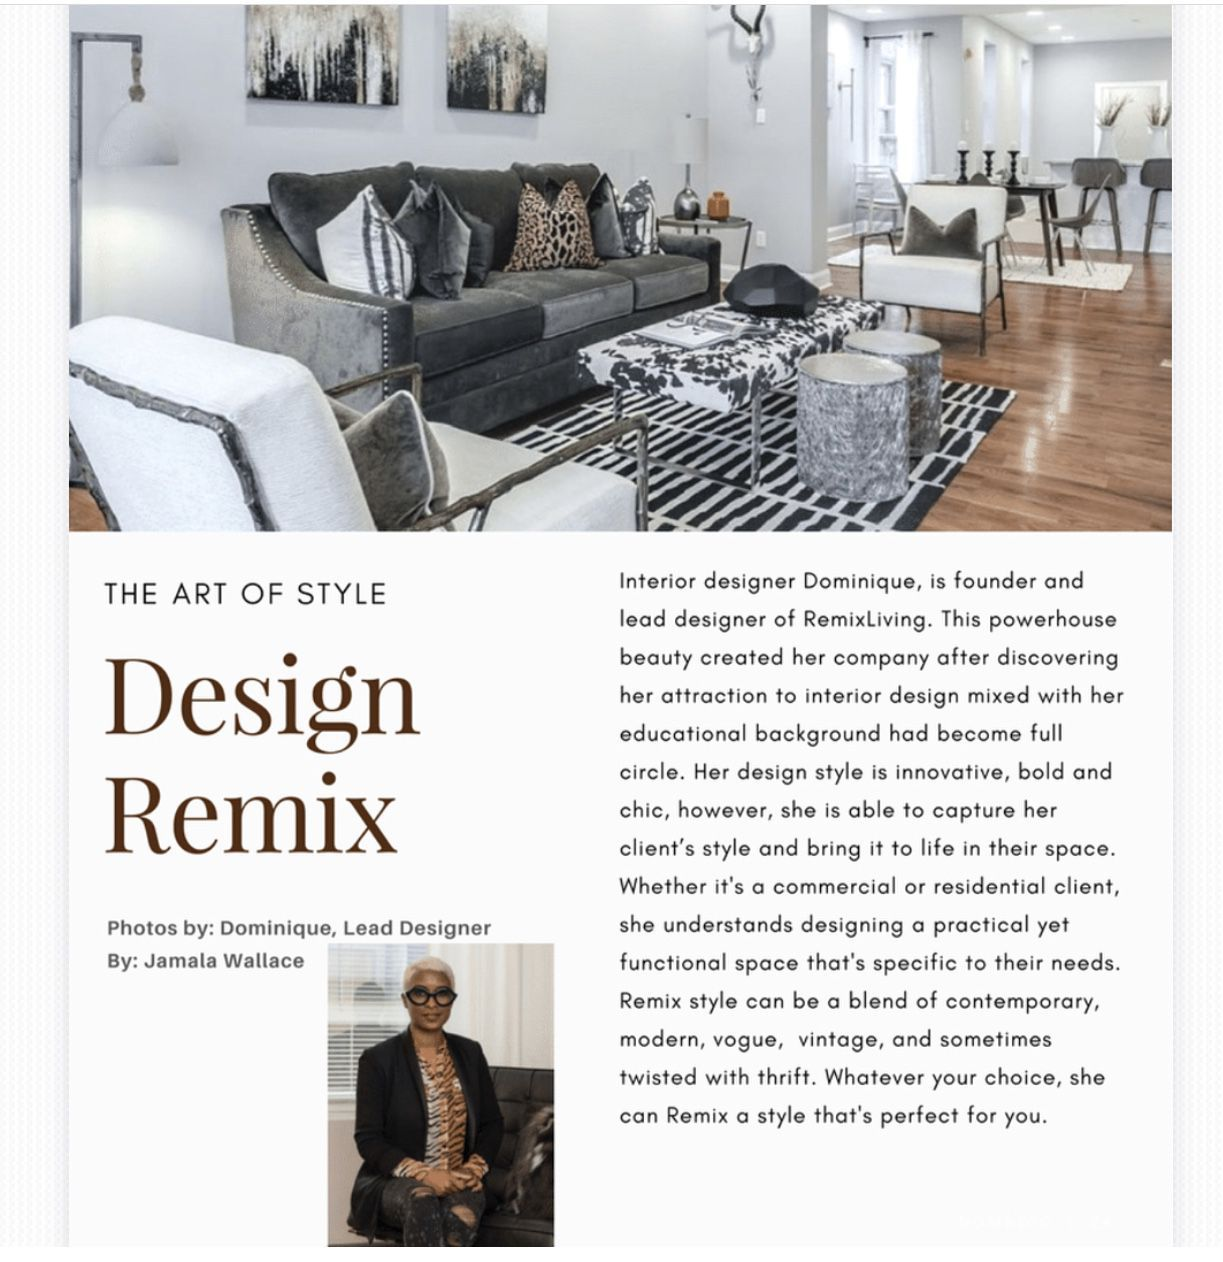 In July 2017 Remix Living Was Awarded By The Black Interior Design Network  To Be One Of The Top 10 Emerging Interior Designers. Being Hand Selected  For This ...